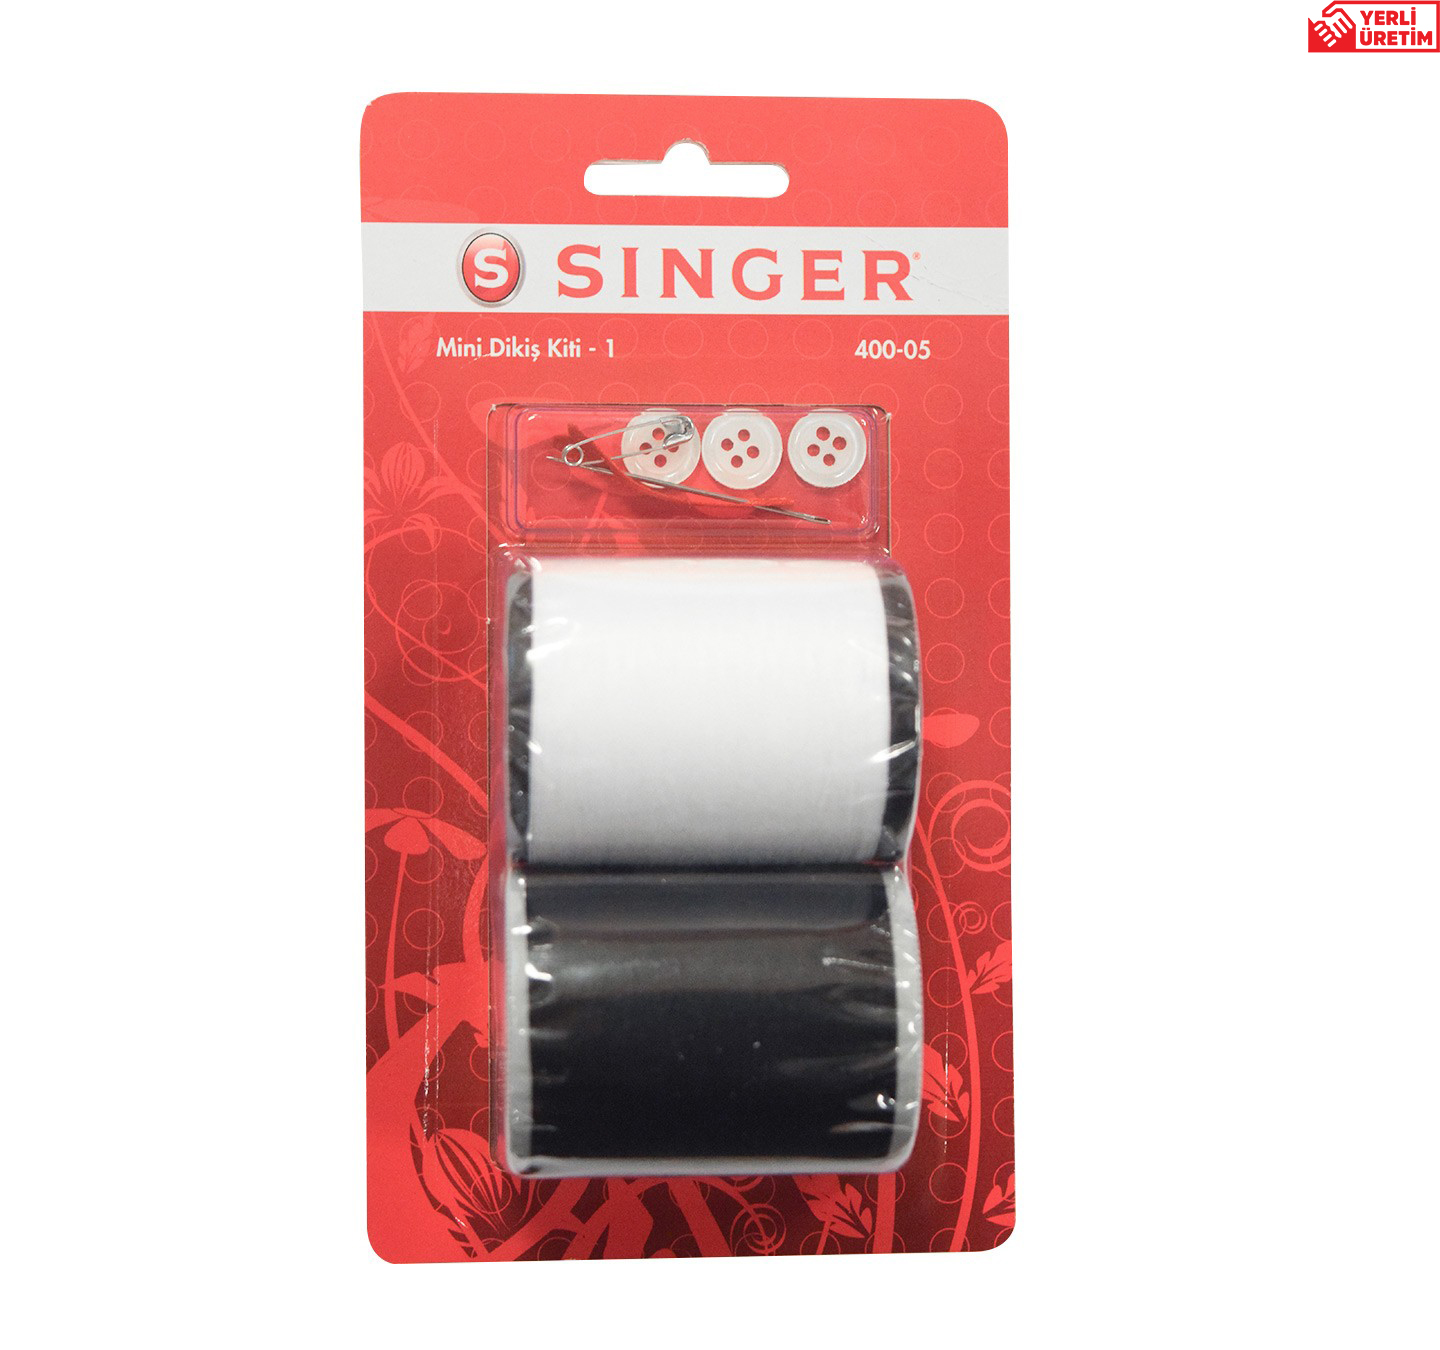 SINGER 400 - 05 SEWING KIT